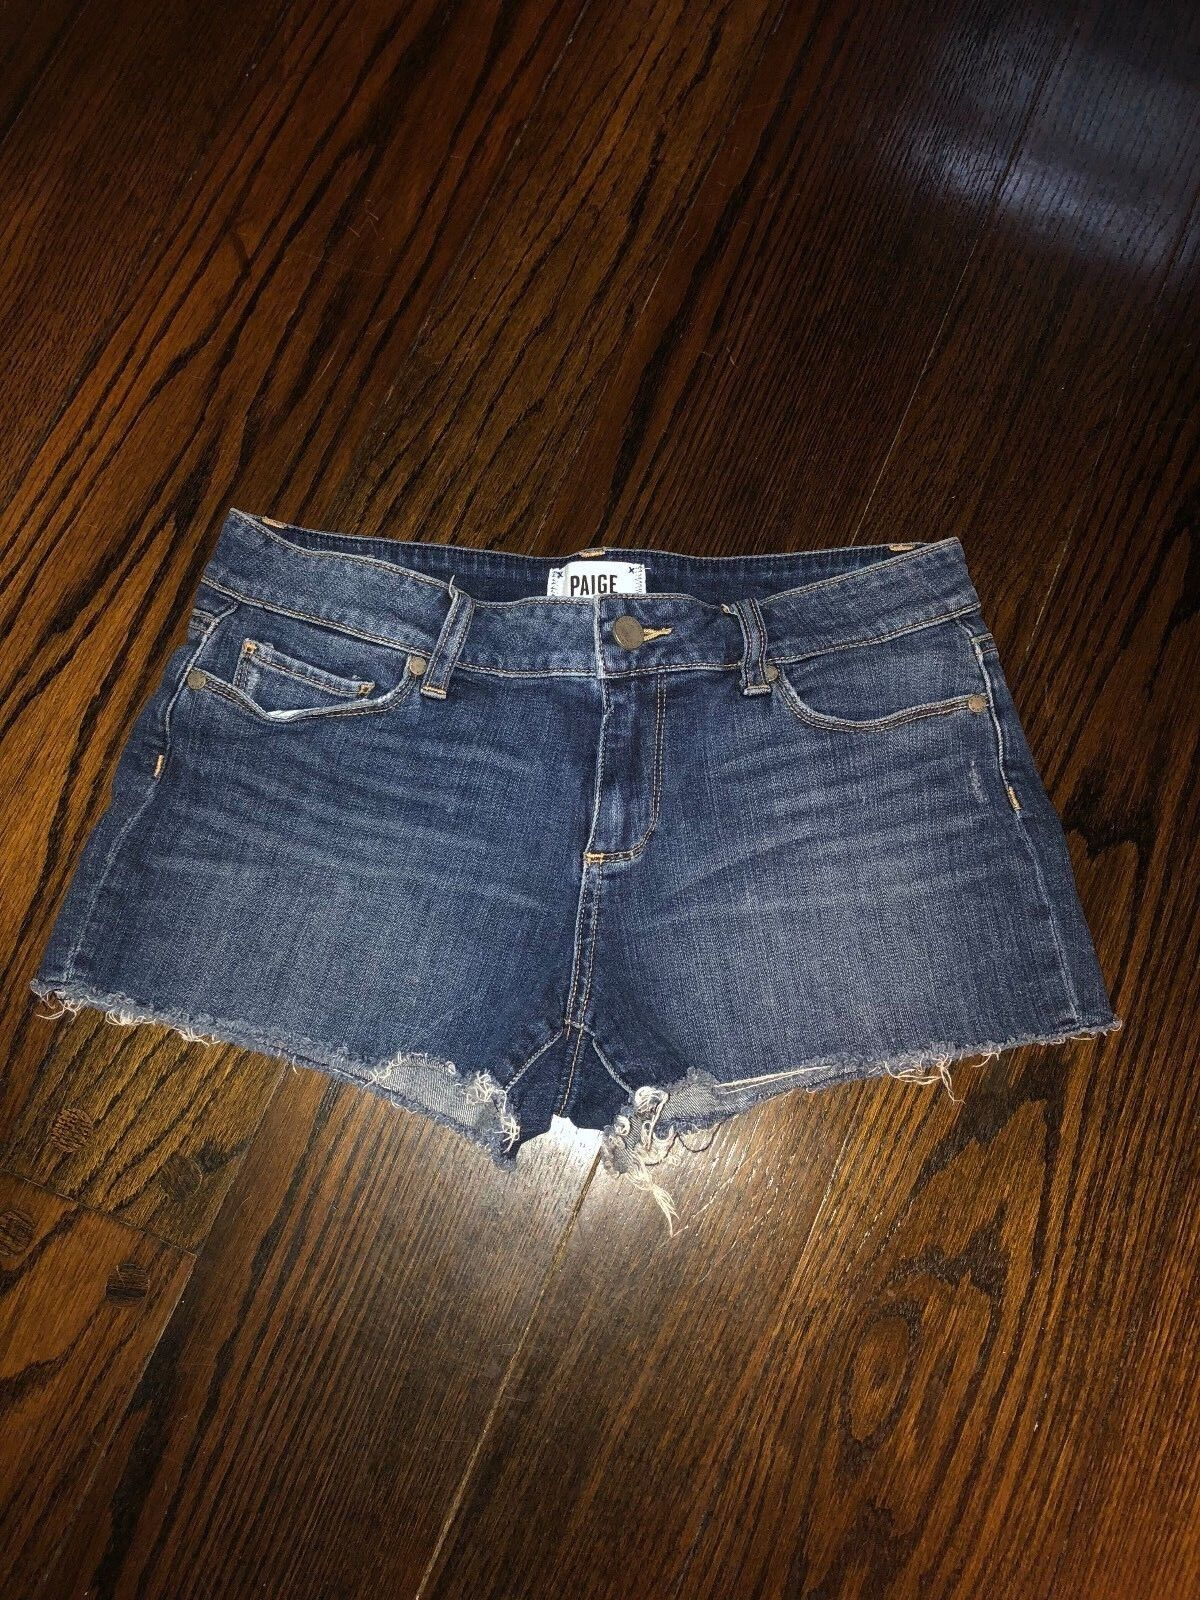 Ladies Paige Jean Shorts Size 28 Catalina Short